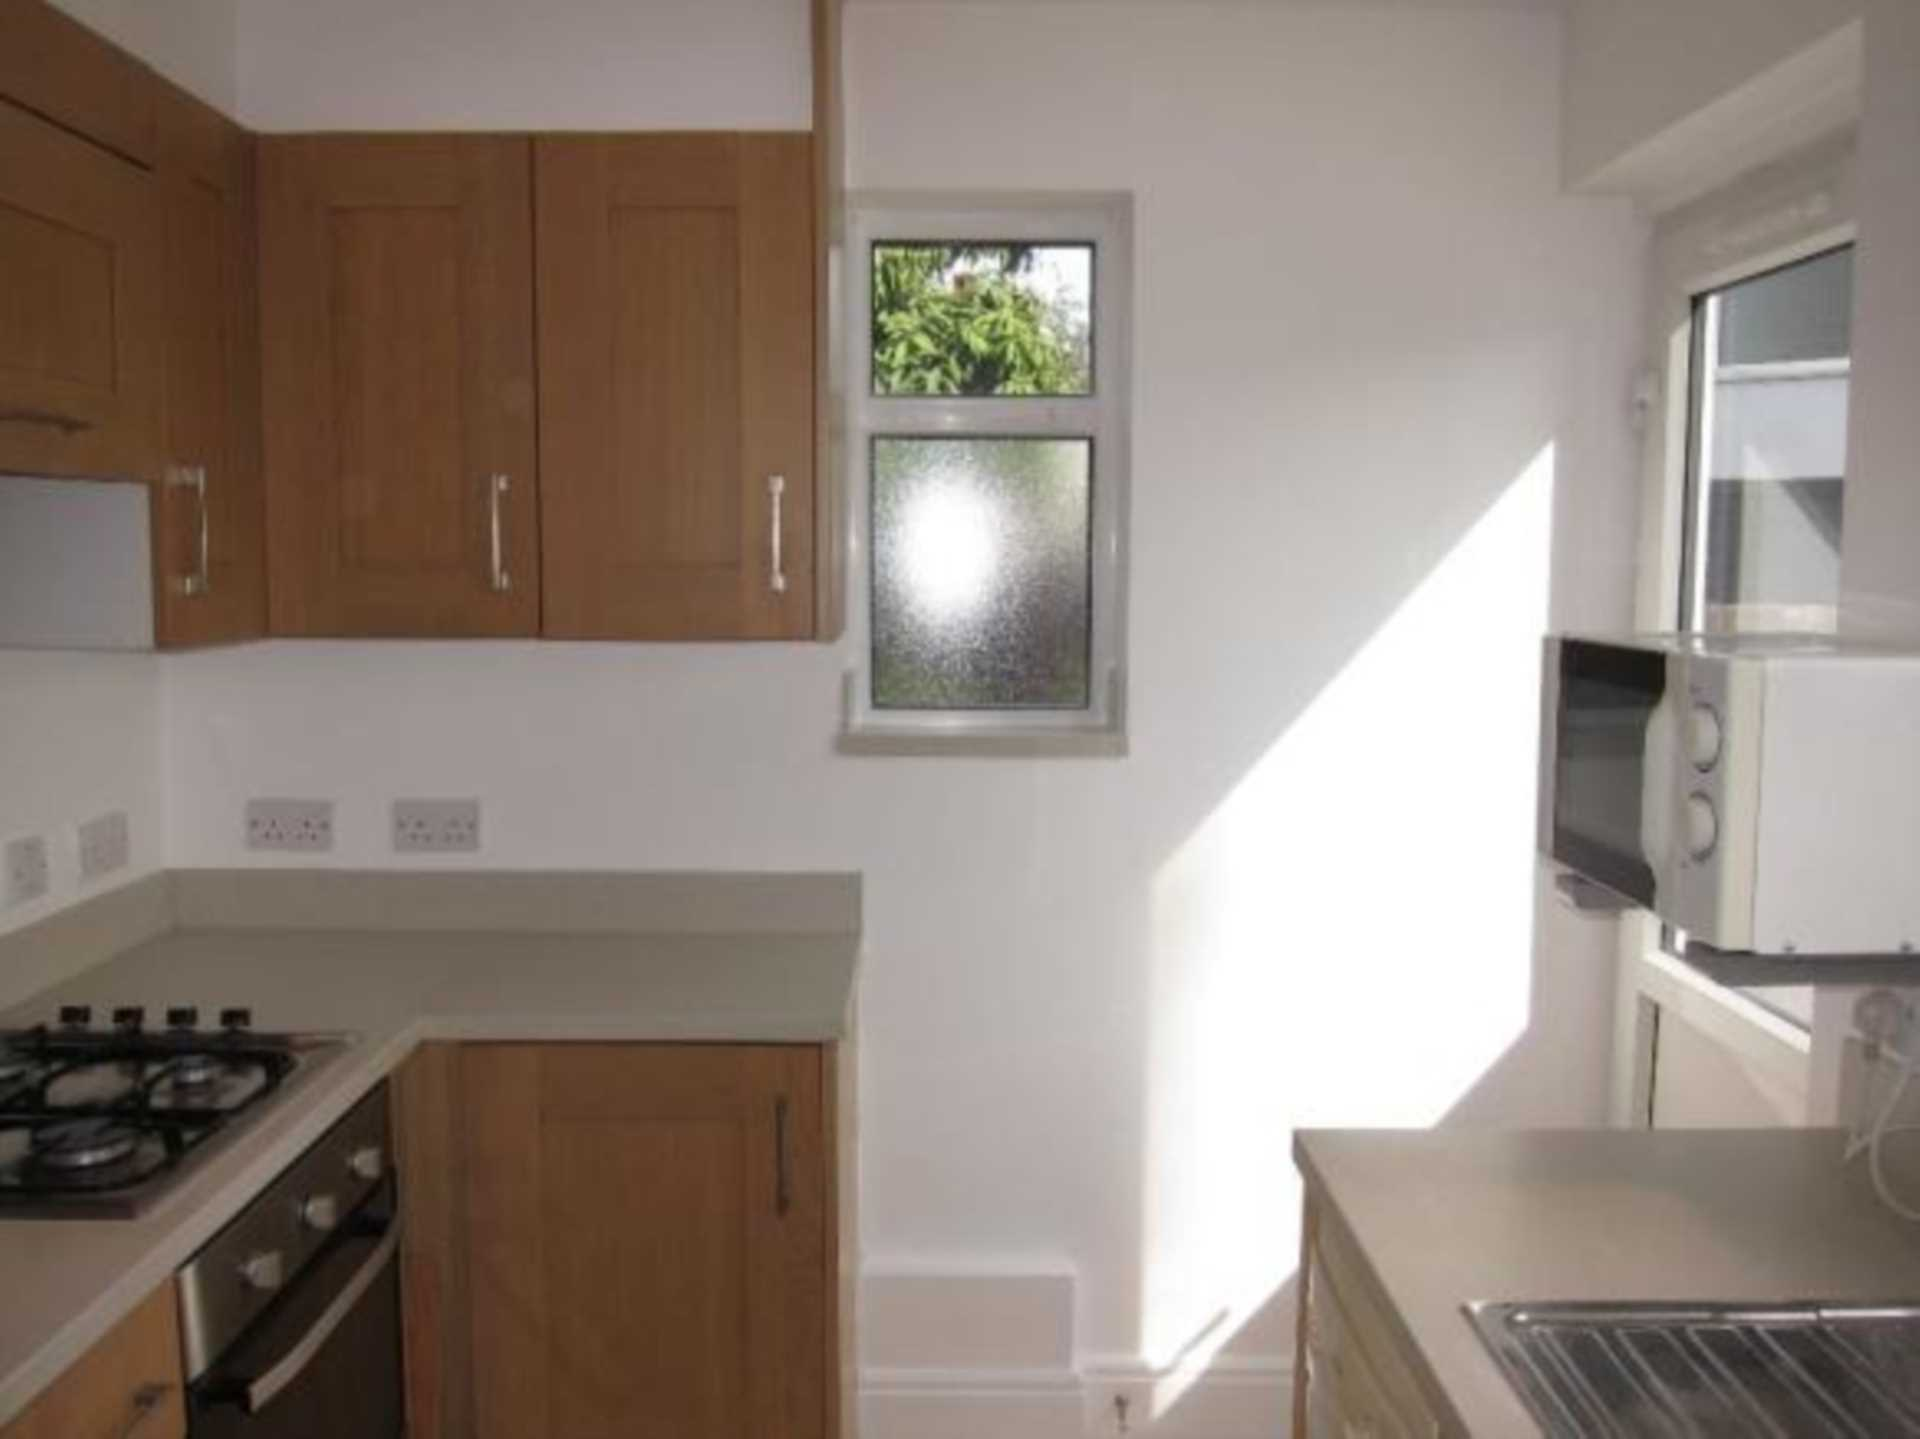 Clifton Rd, Perivale, Image 11